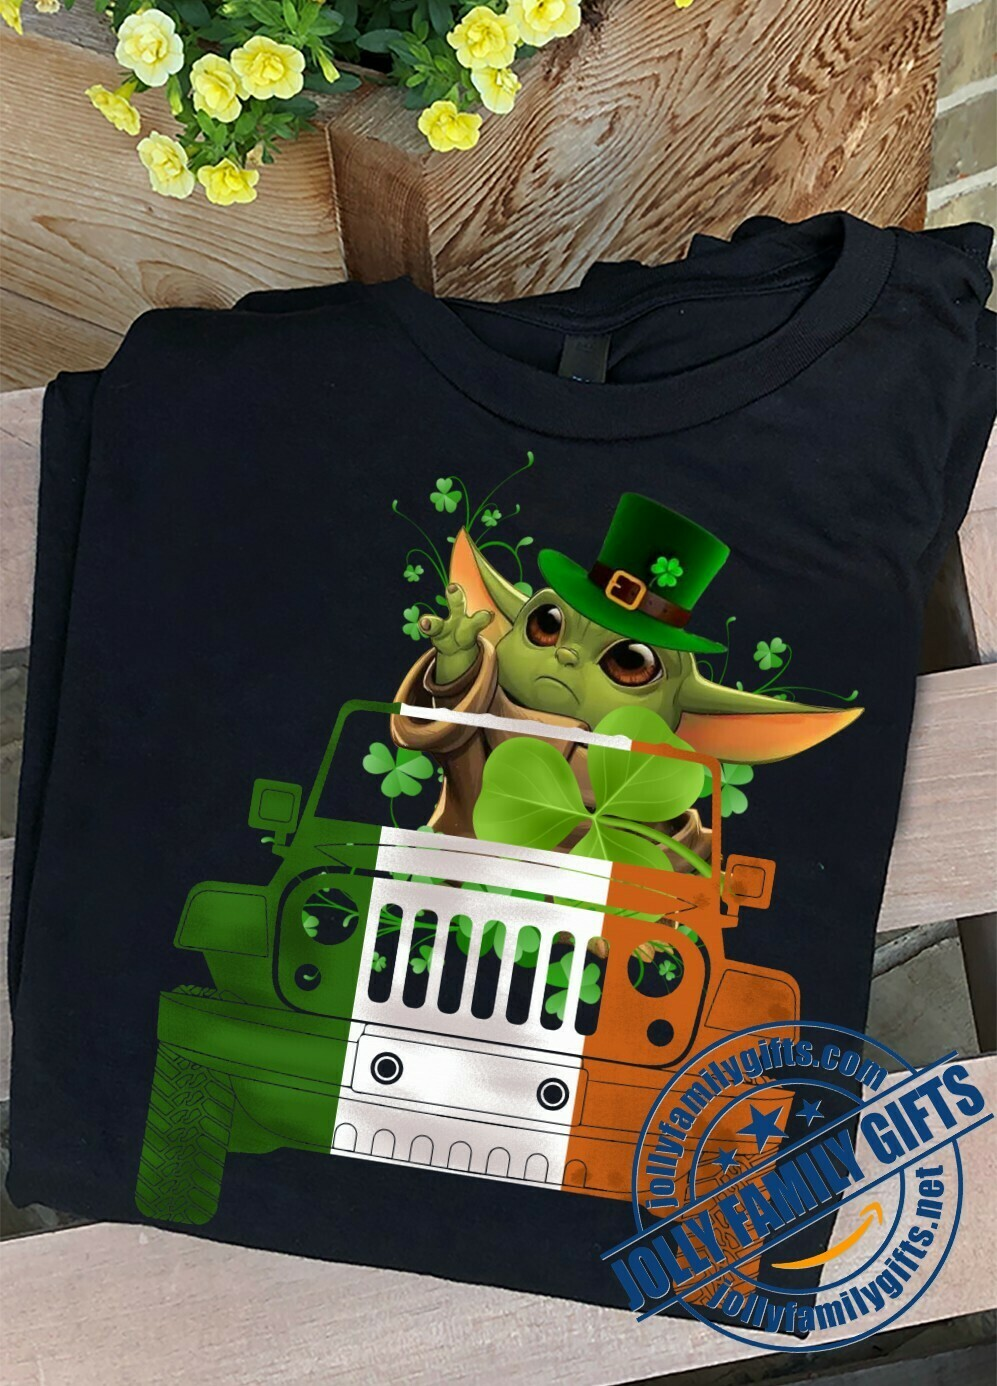 Baby Yoda The Mandalorian Star Wars Driving Jeep Car Shamrock Four Leaf Clover Happy St. Patrick's Day Luck Charm of the Irish Fans  Unisex T-Shirt Hoodie Sweatshirt Sweater Plus Size for Ladies Women